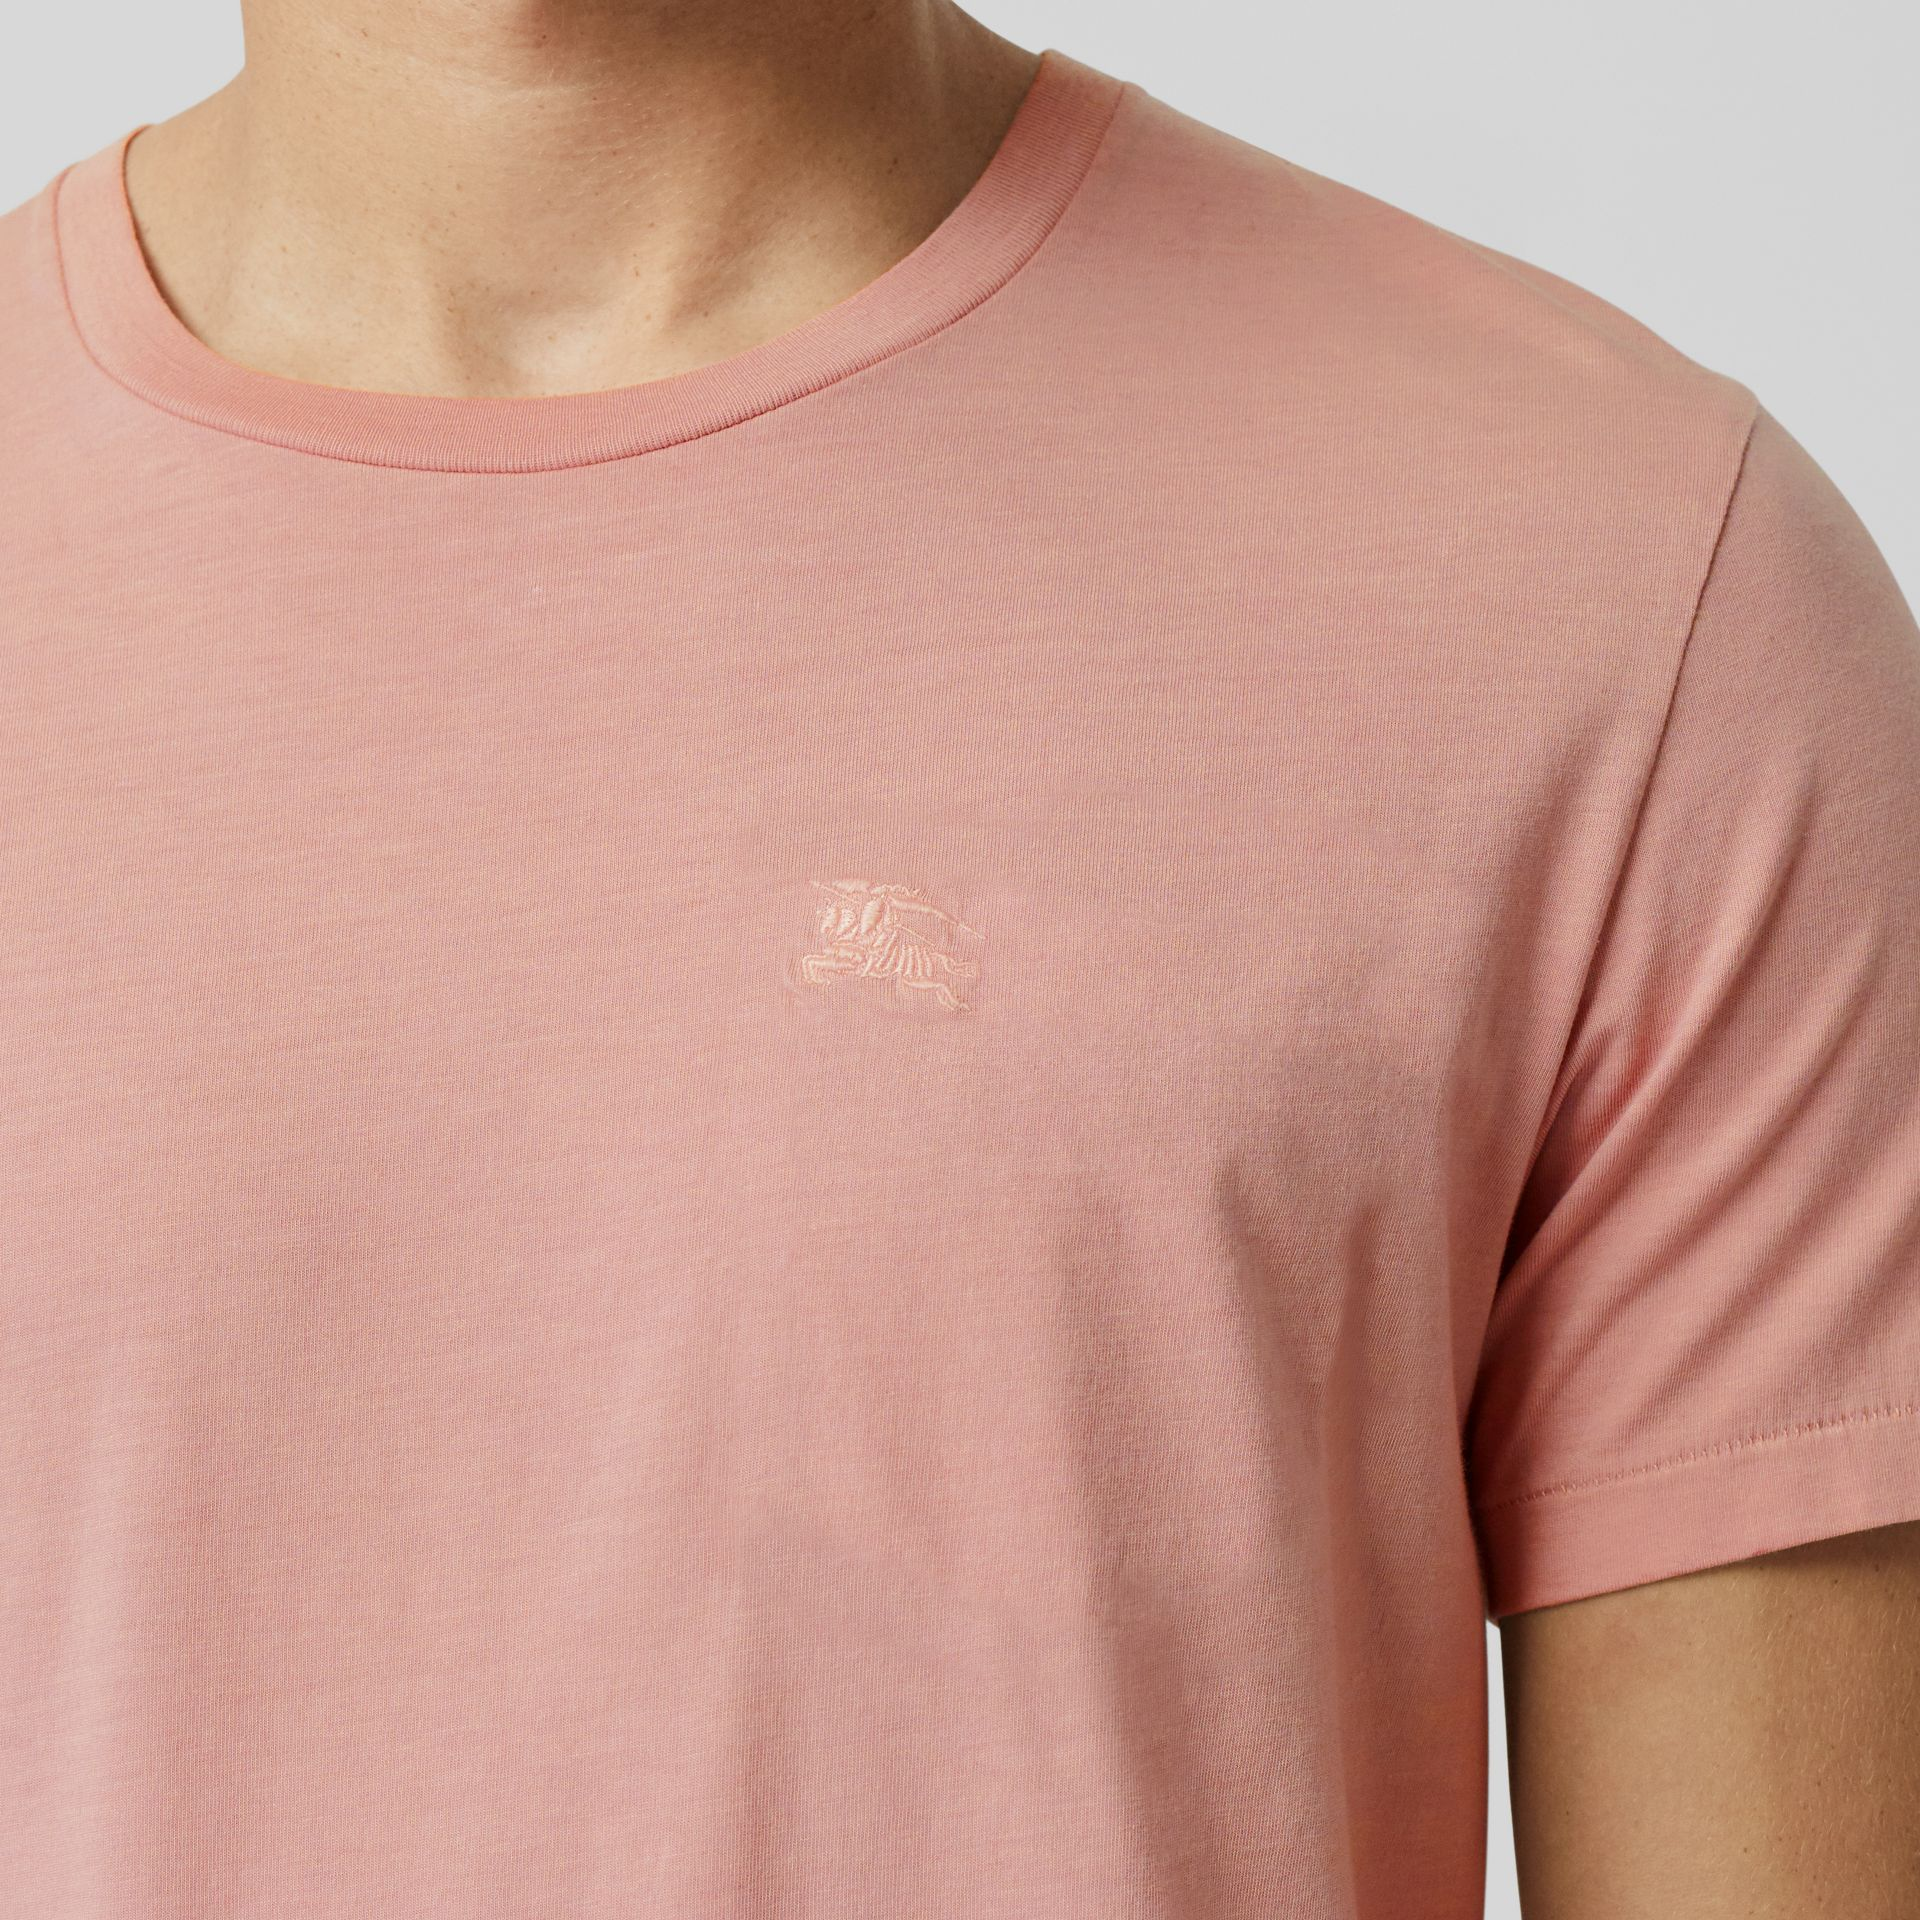 Cotton T-shirt in Chalk Pink - Men | Burberry - gallery image 1